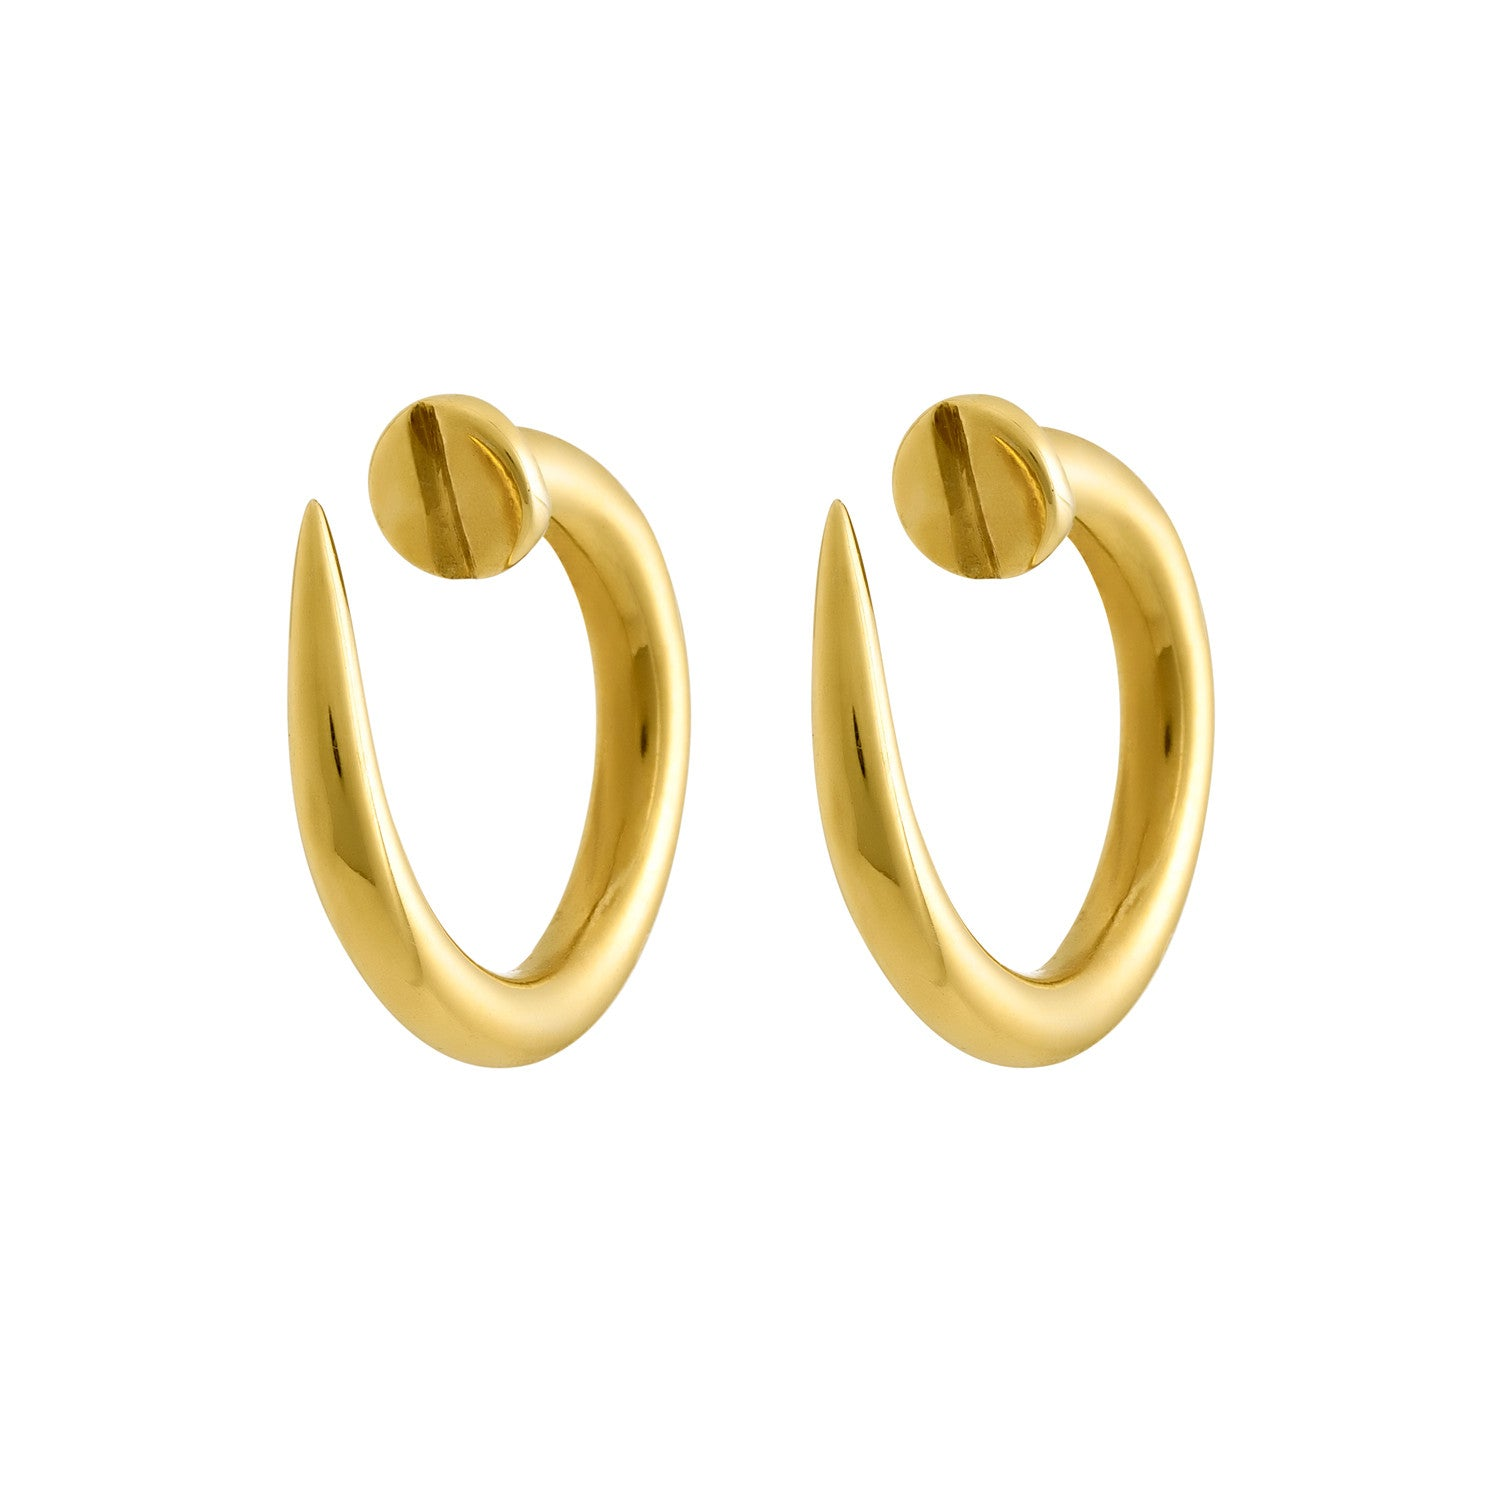 Coco\'s Liberty: Nail it earrings   Jewelry -  Hiphunters Shop